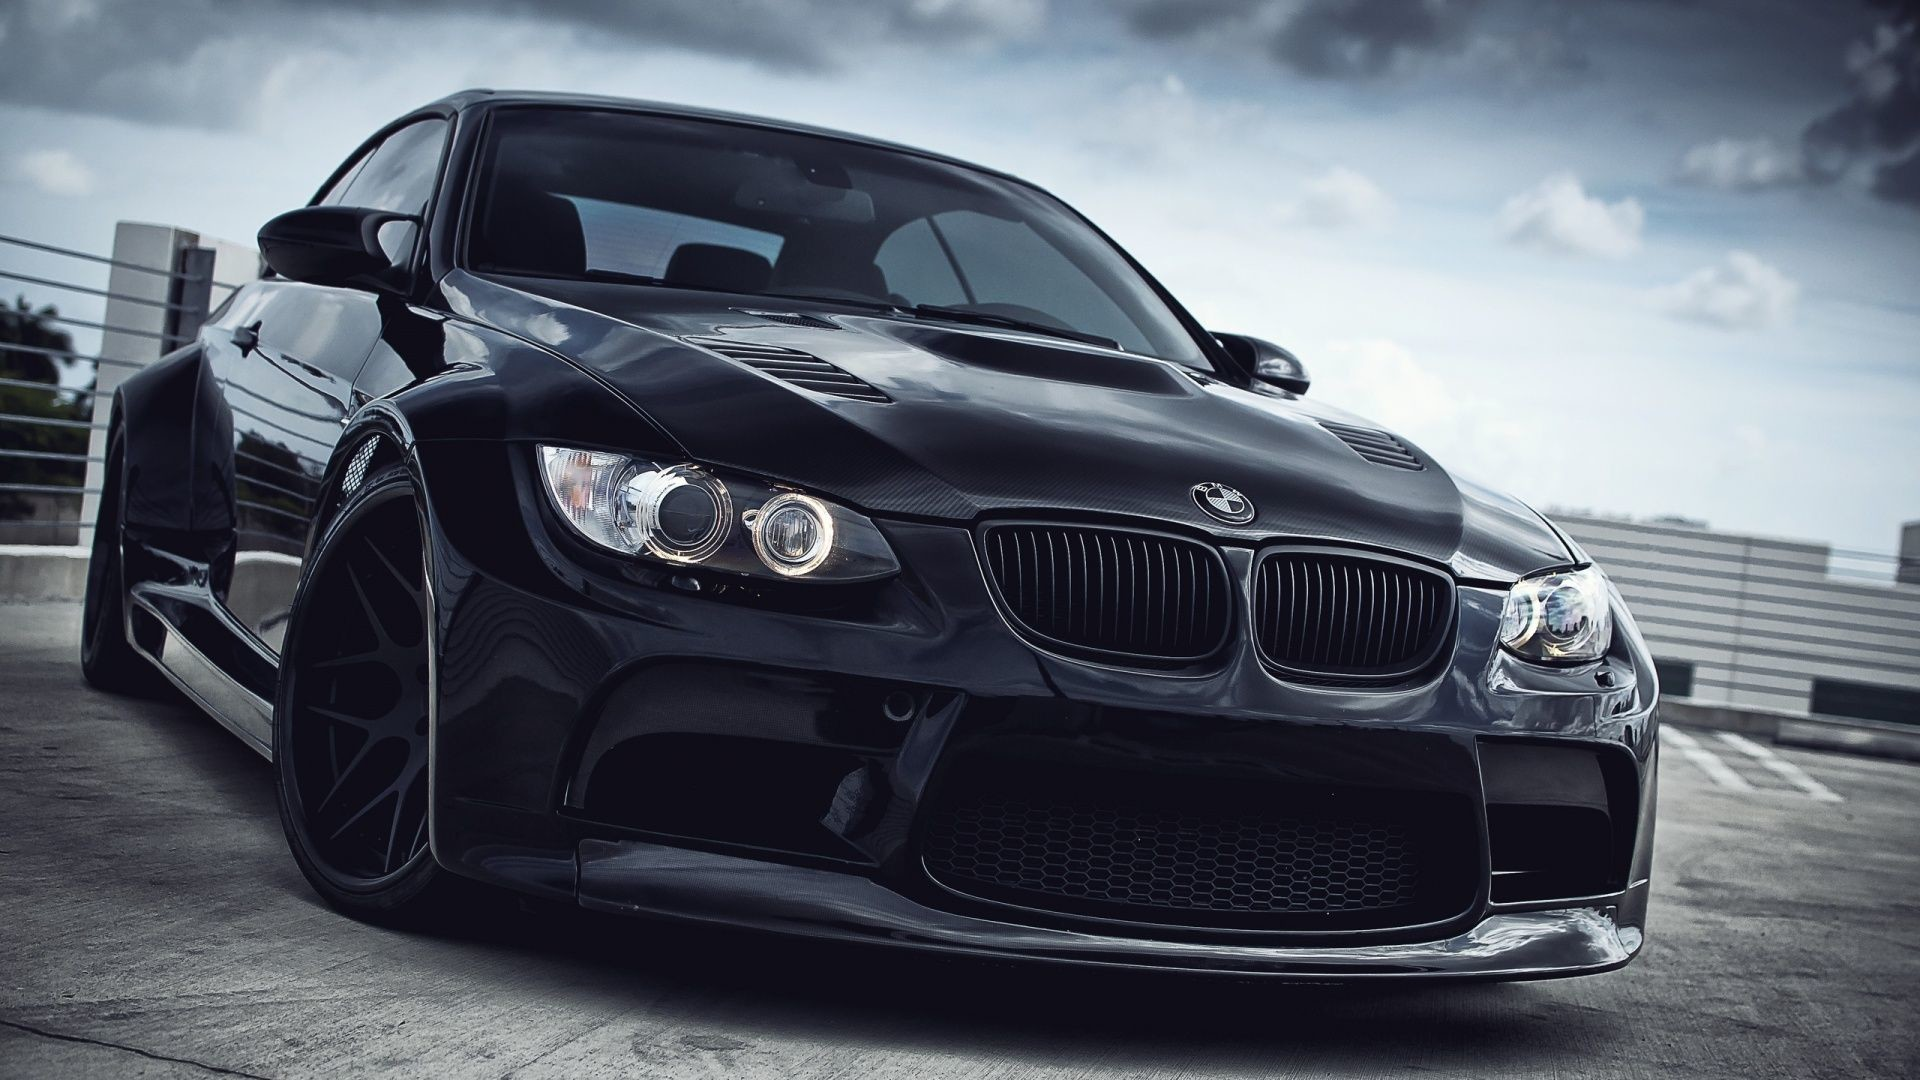 1920x1080 Bmw Wallpapers, Top HD Bmw Pictures, #NI HDQ